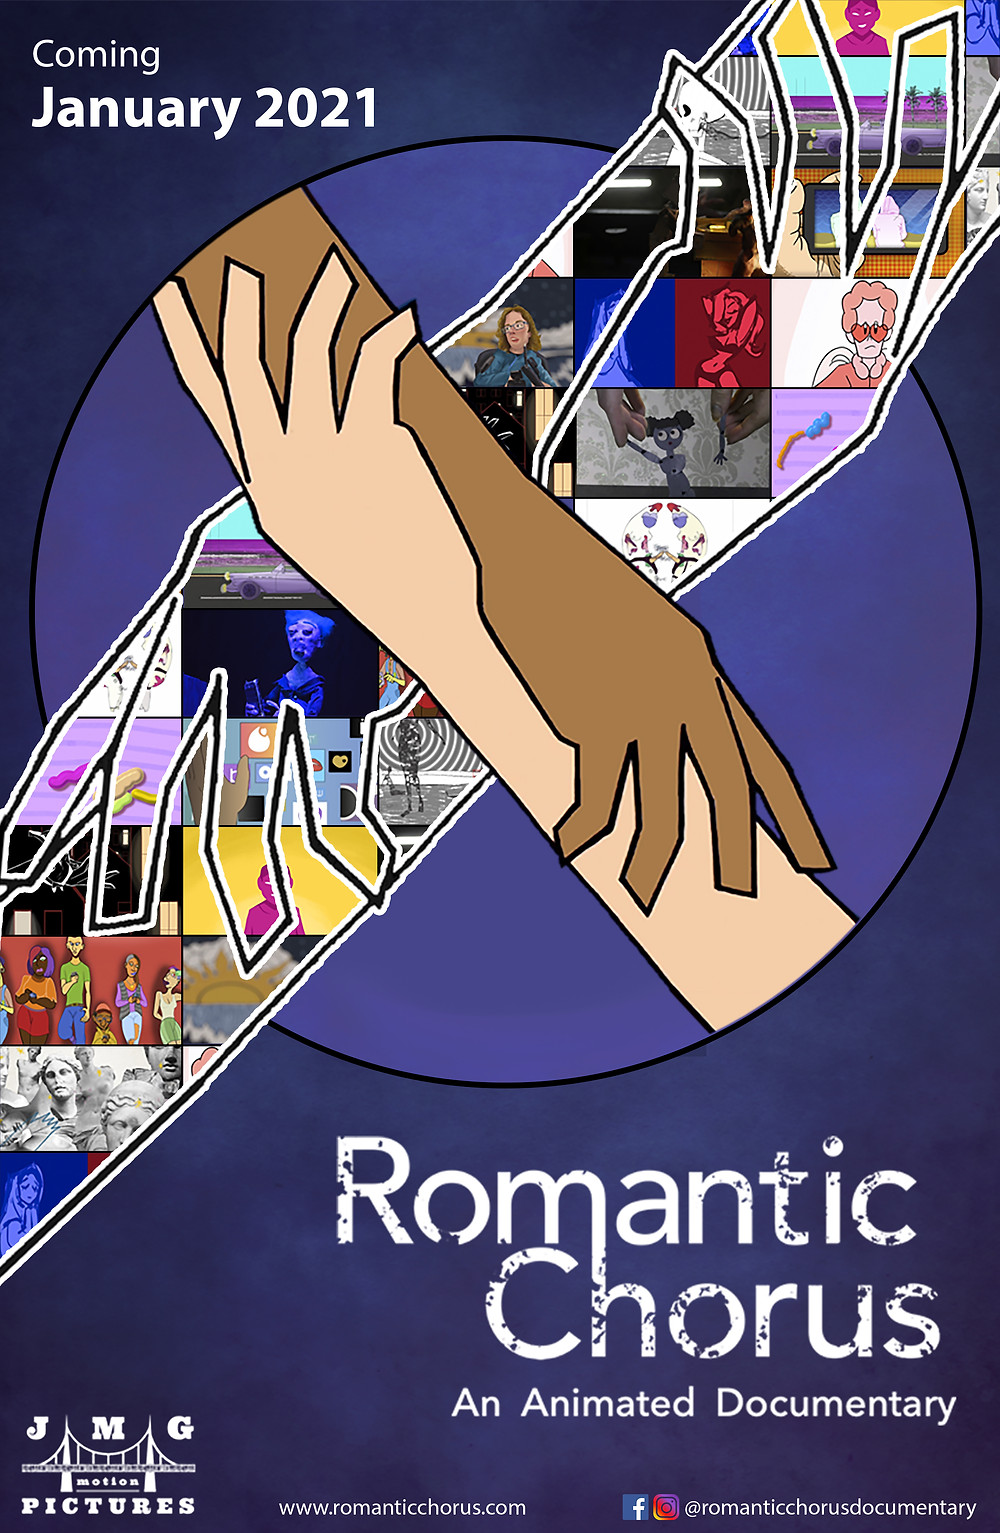 Poster for Romantic Chorus showing animation.